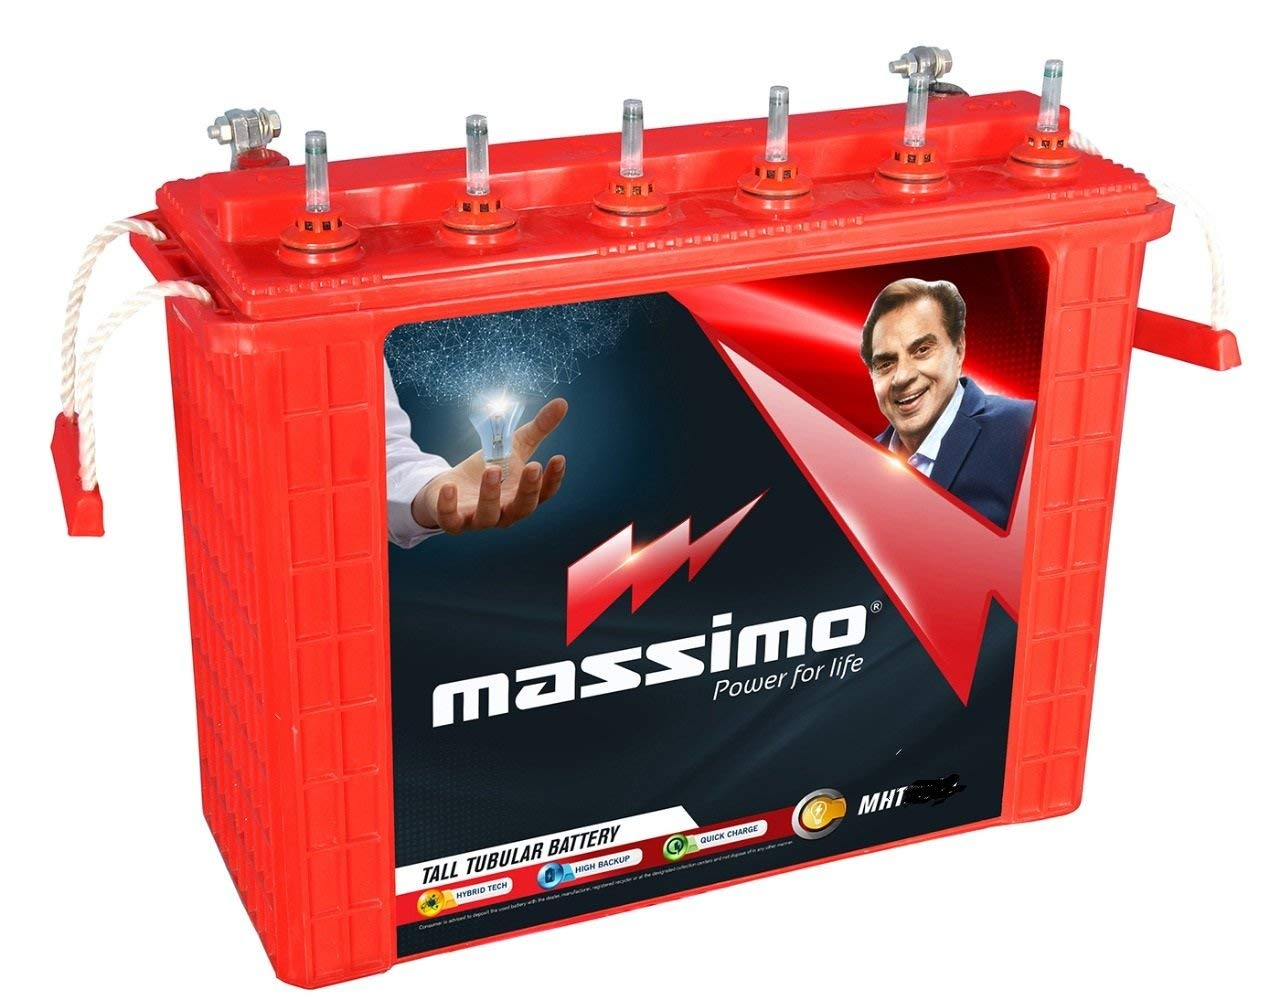 Massimo Tall Tubular MIT 1500 135AH Battery